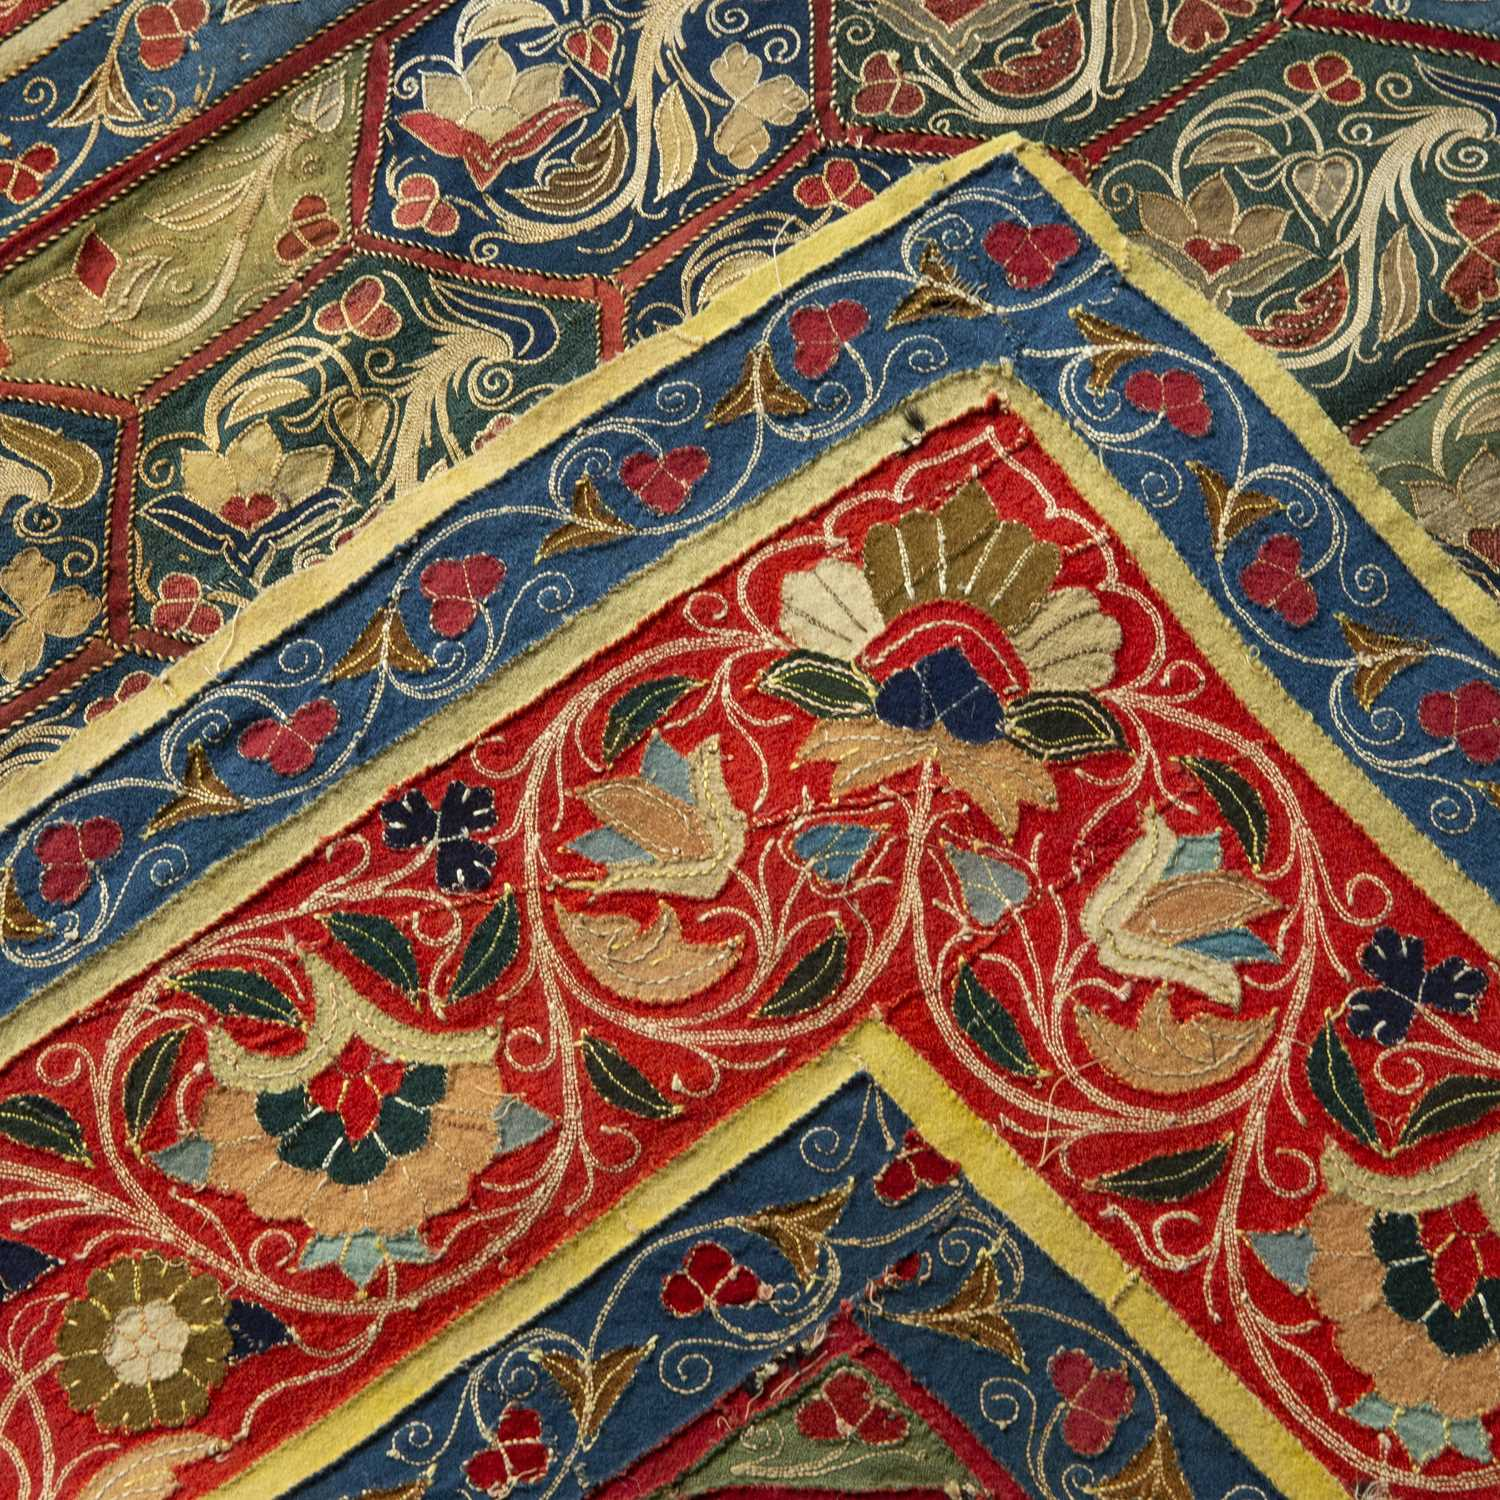 A 19th century Persian rectangular needlework table cover with a colourful repeating geometric and - Image 2 of 2